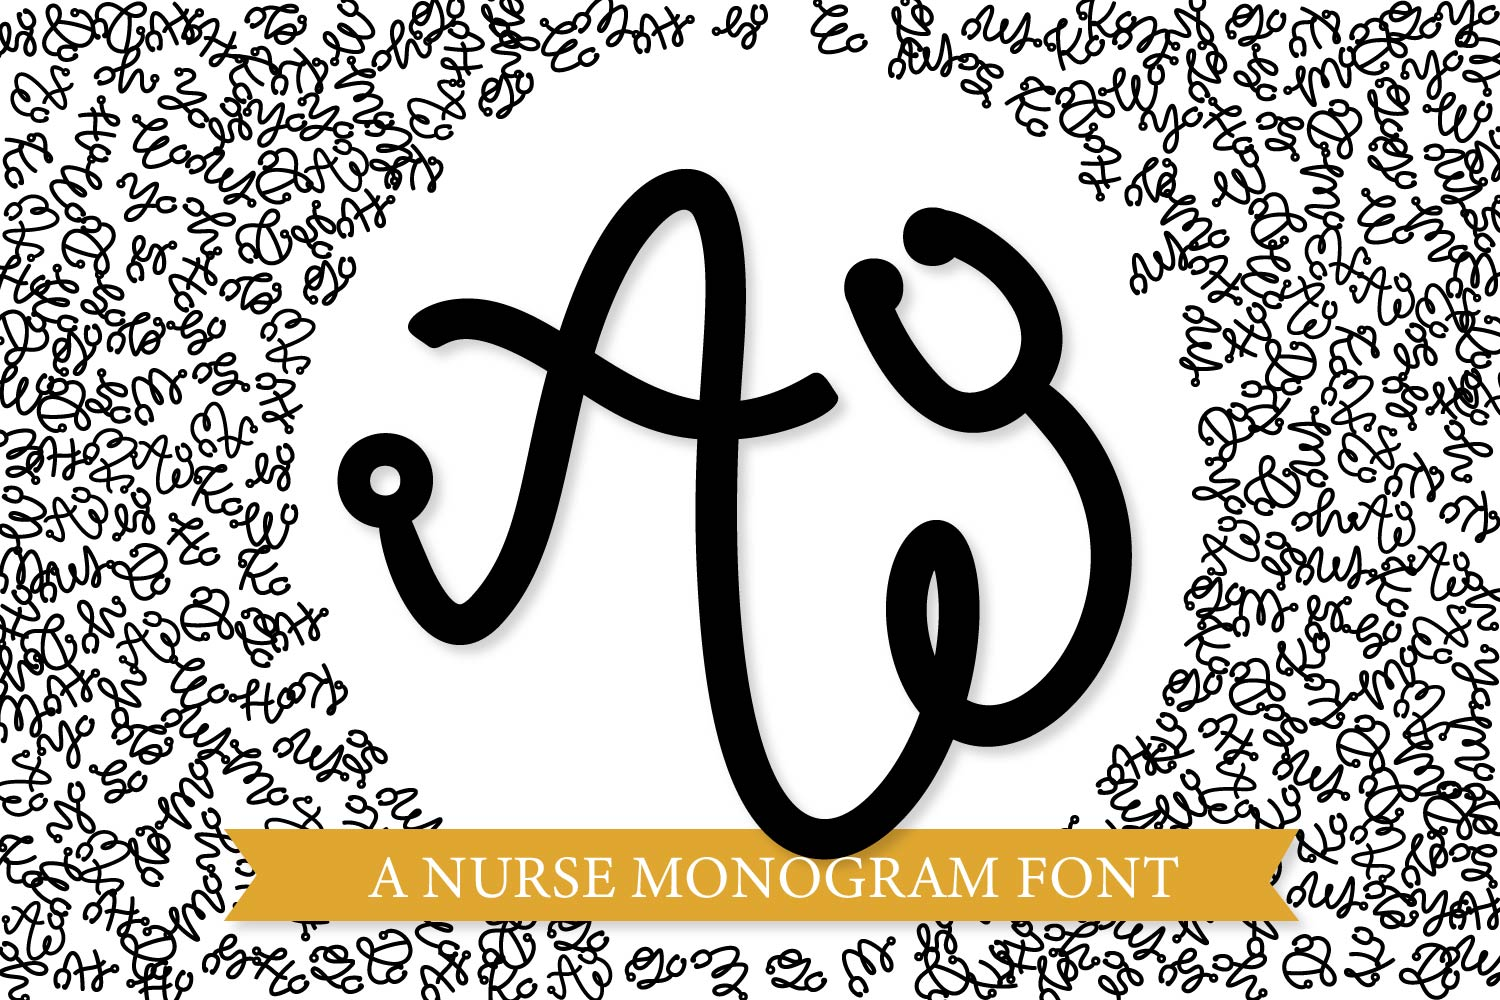 Nurse Monogram Font - A Stethoscope Font Perfect For Gifts! example image 1